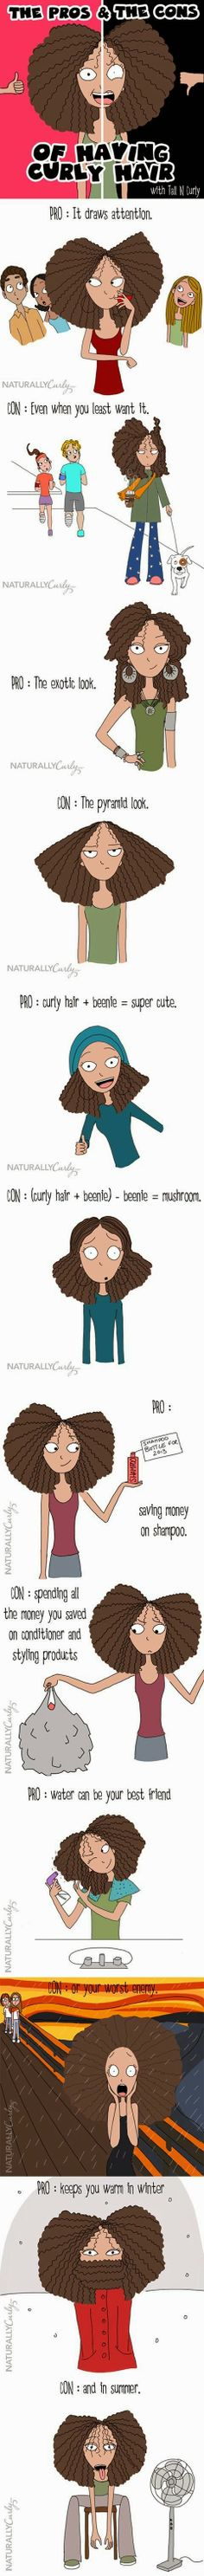 Curly hair pros and cons :) :(